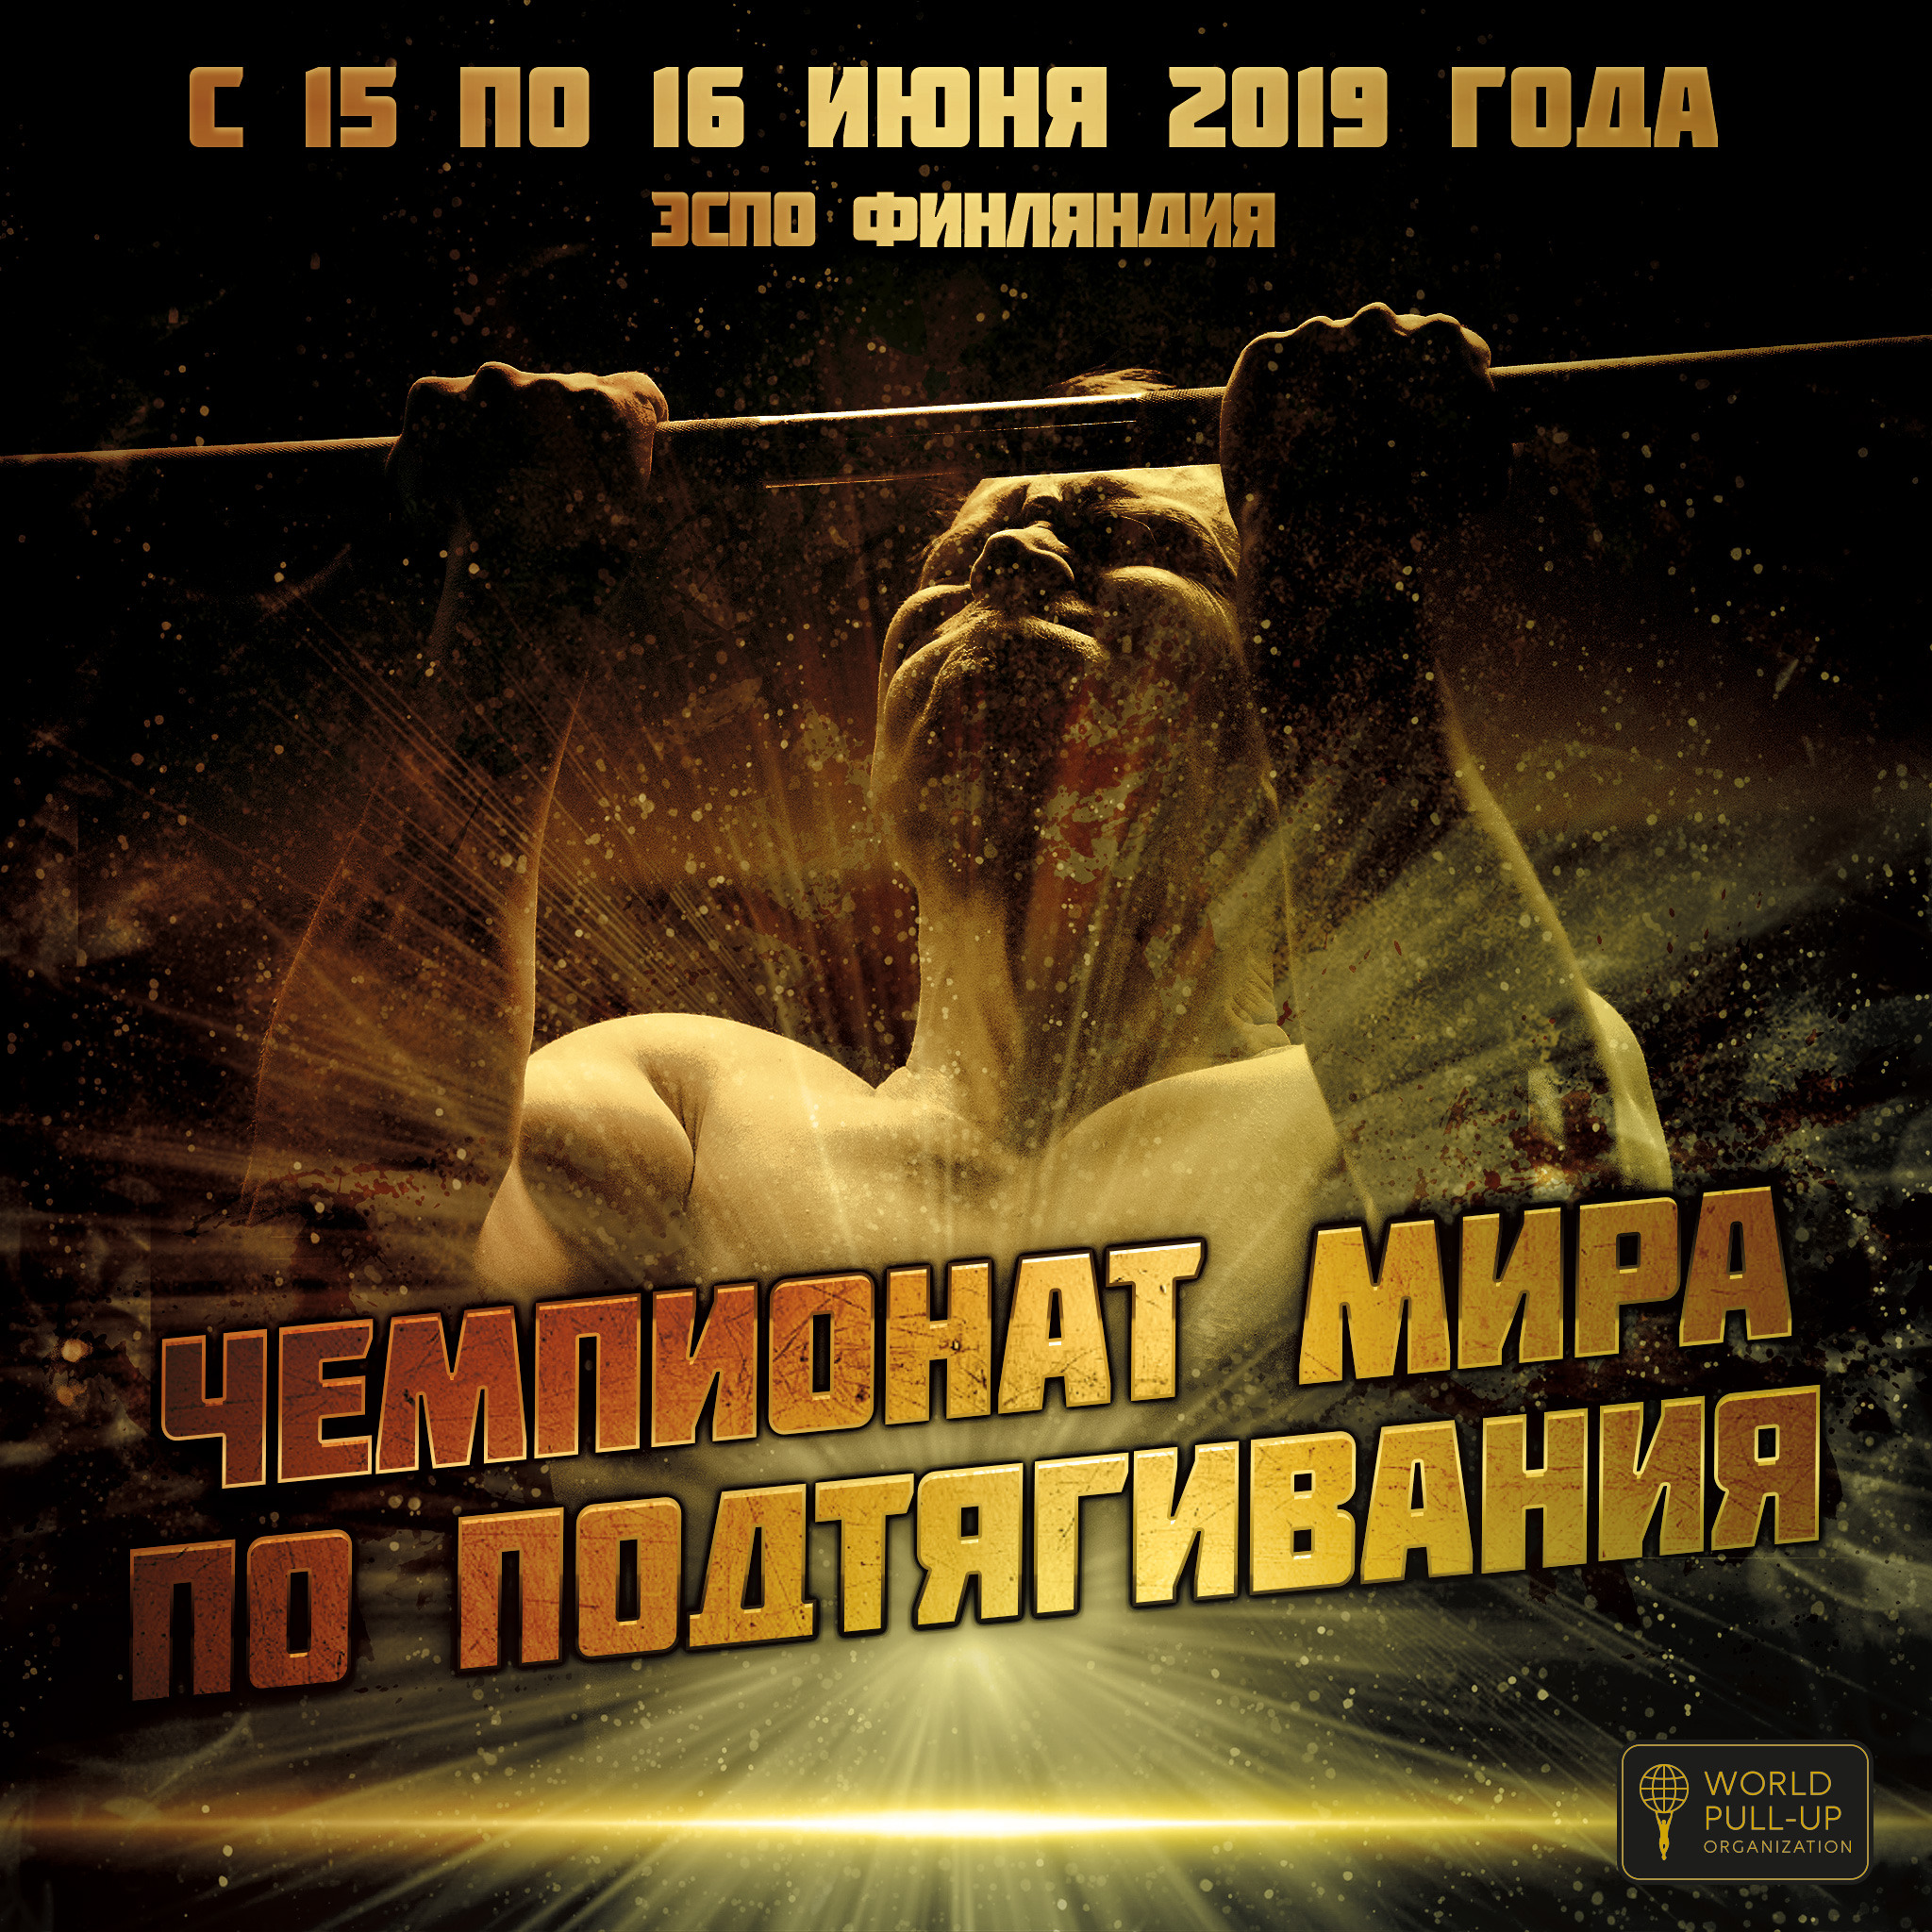 15-16.06.2019 – WORLD PULL-UP CHAMPIONSHIPS, Finland